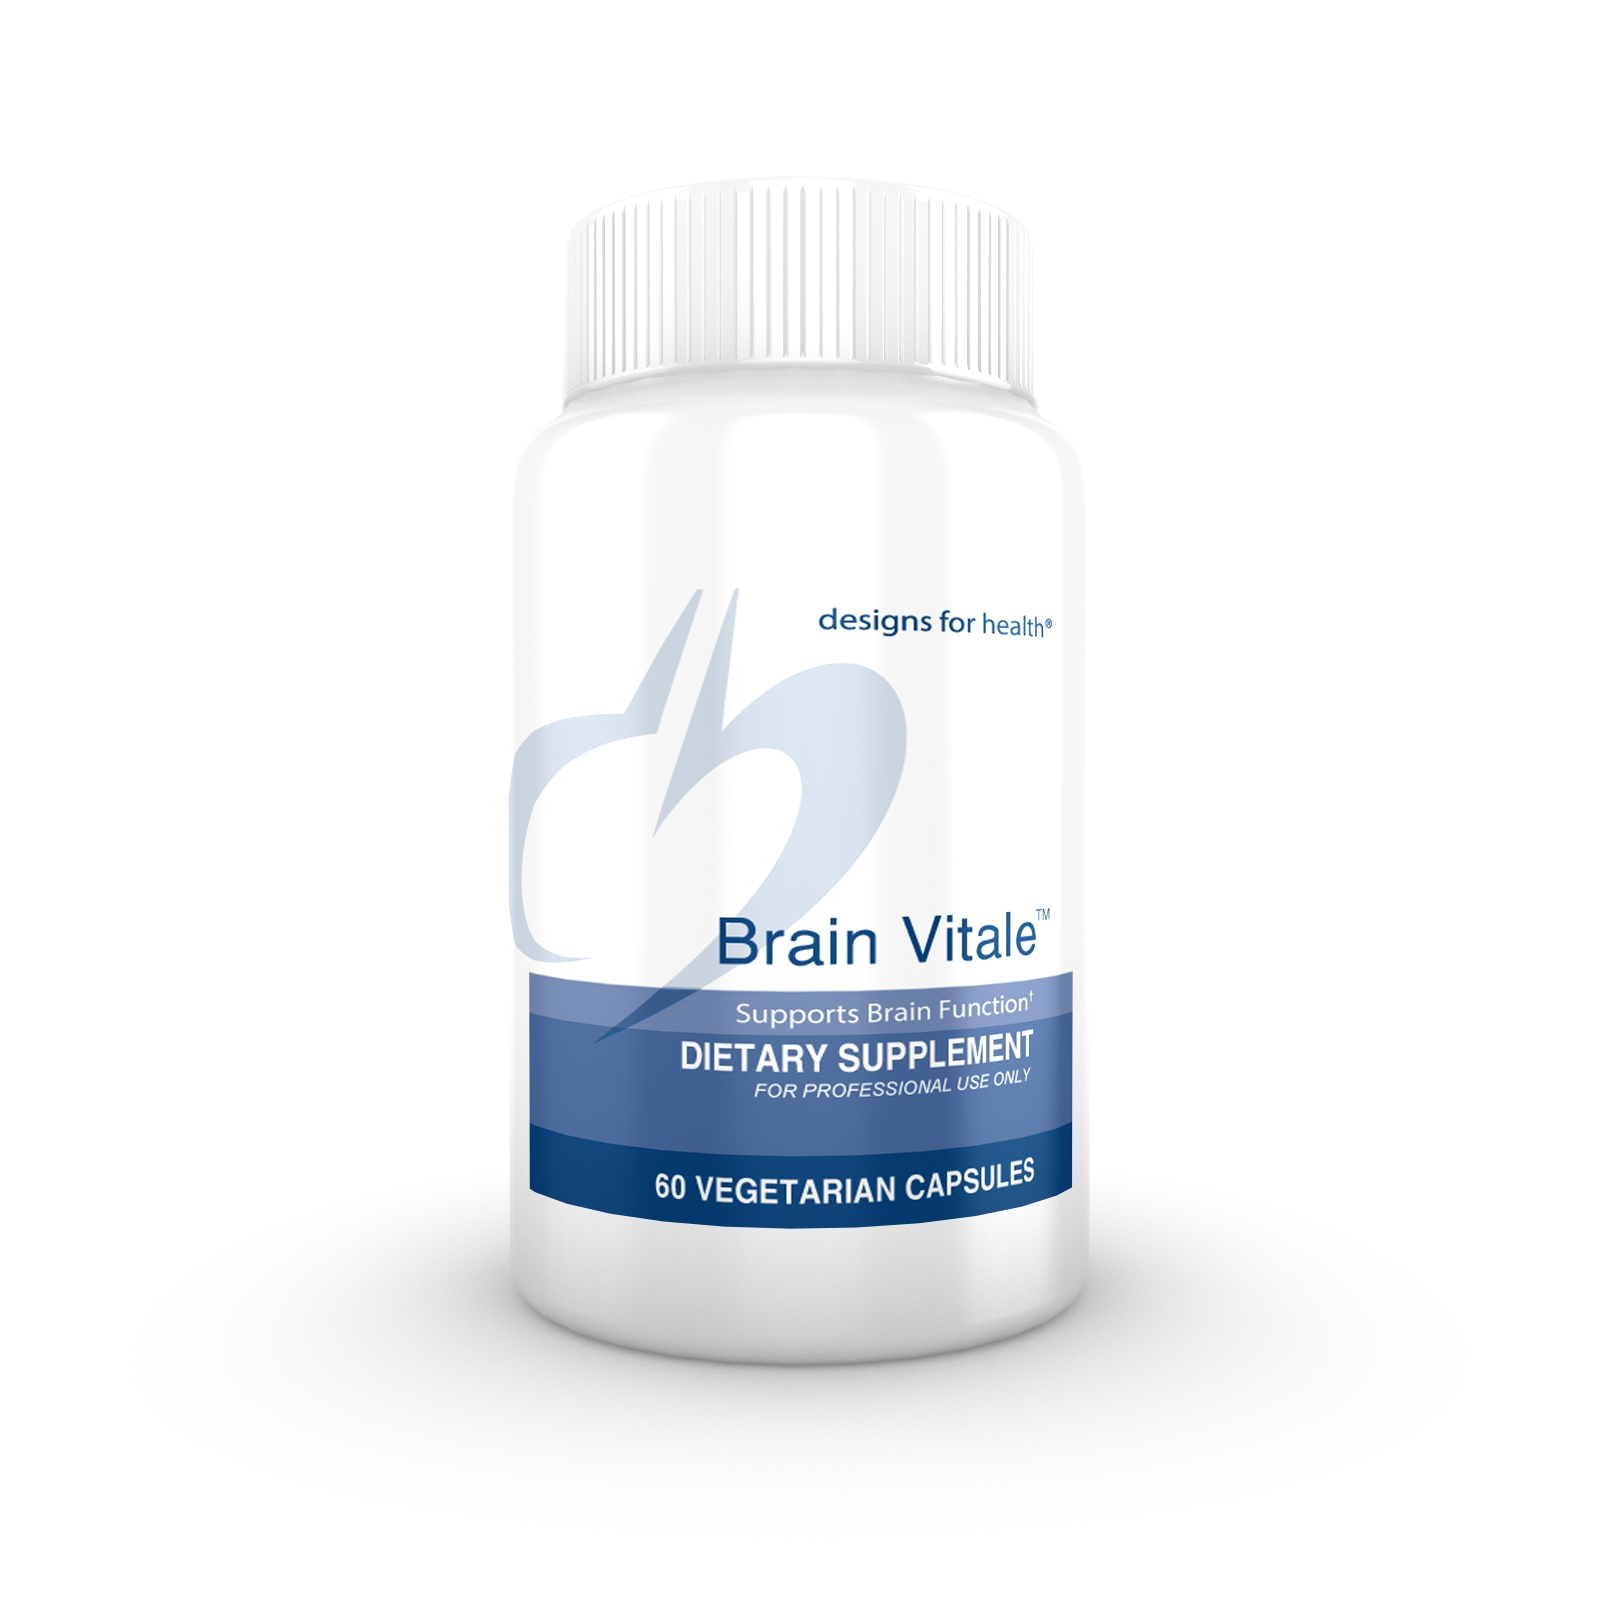 brain-vitale-capsules-60-vegetarian-capsules-designs-for-health